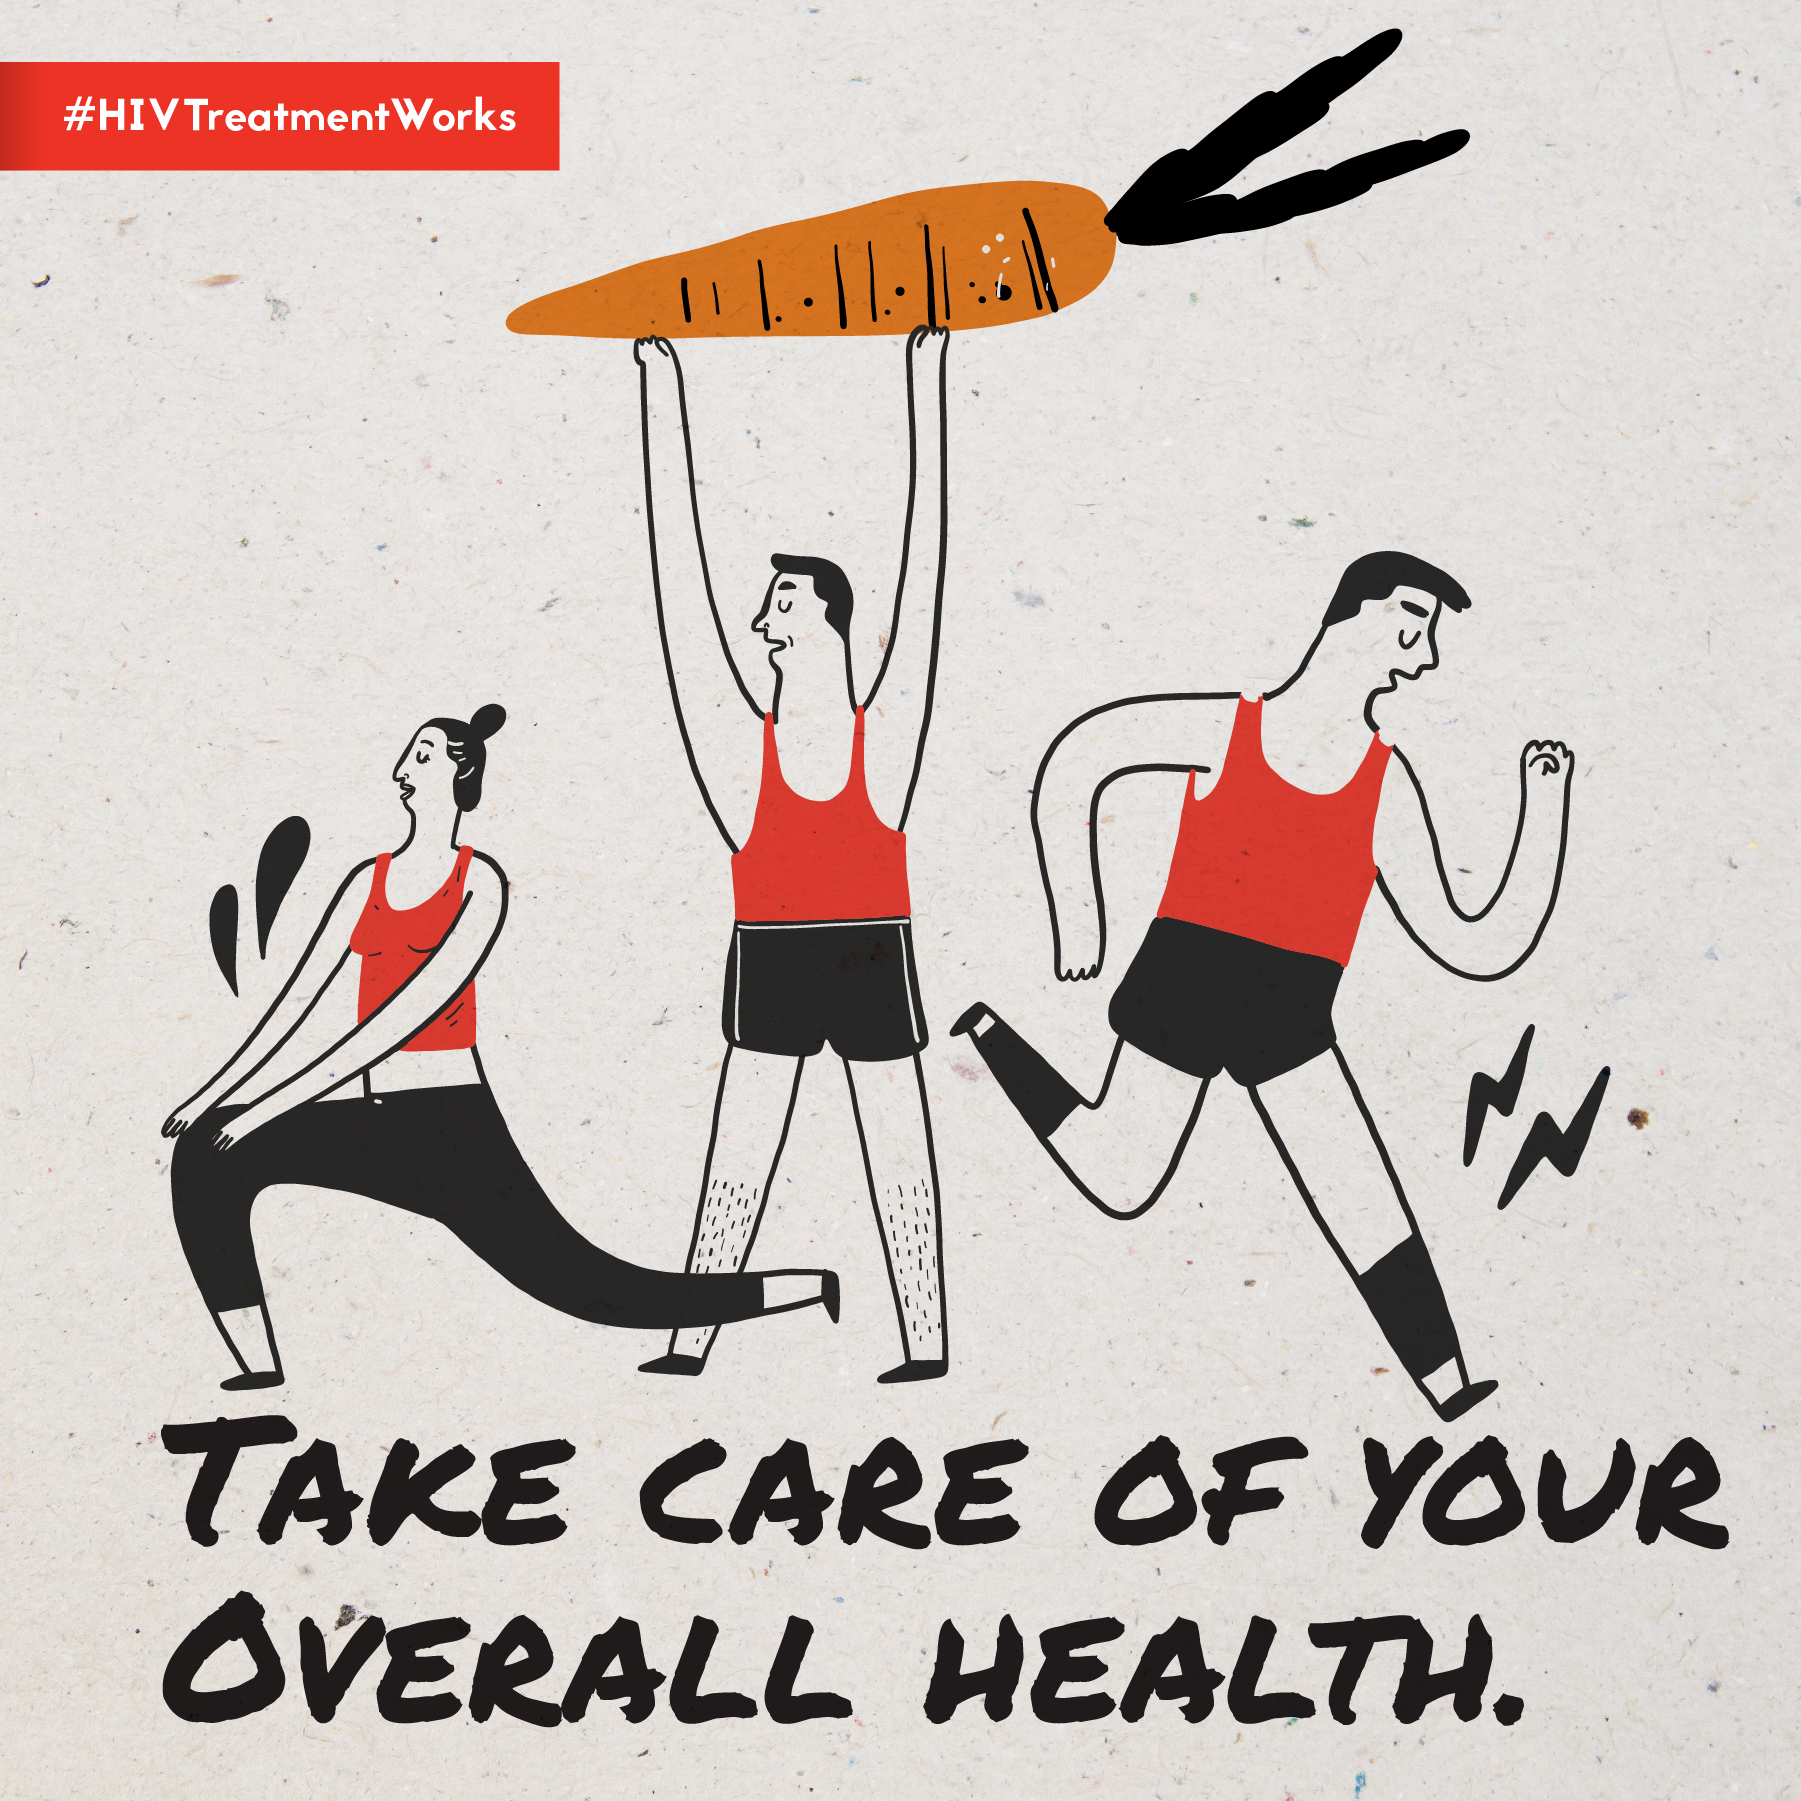 Image displays animation of three figures exercising, along with the following text: TAKE CARE OF YOUR OVERALL HEALTH.